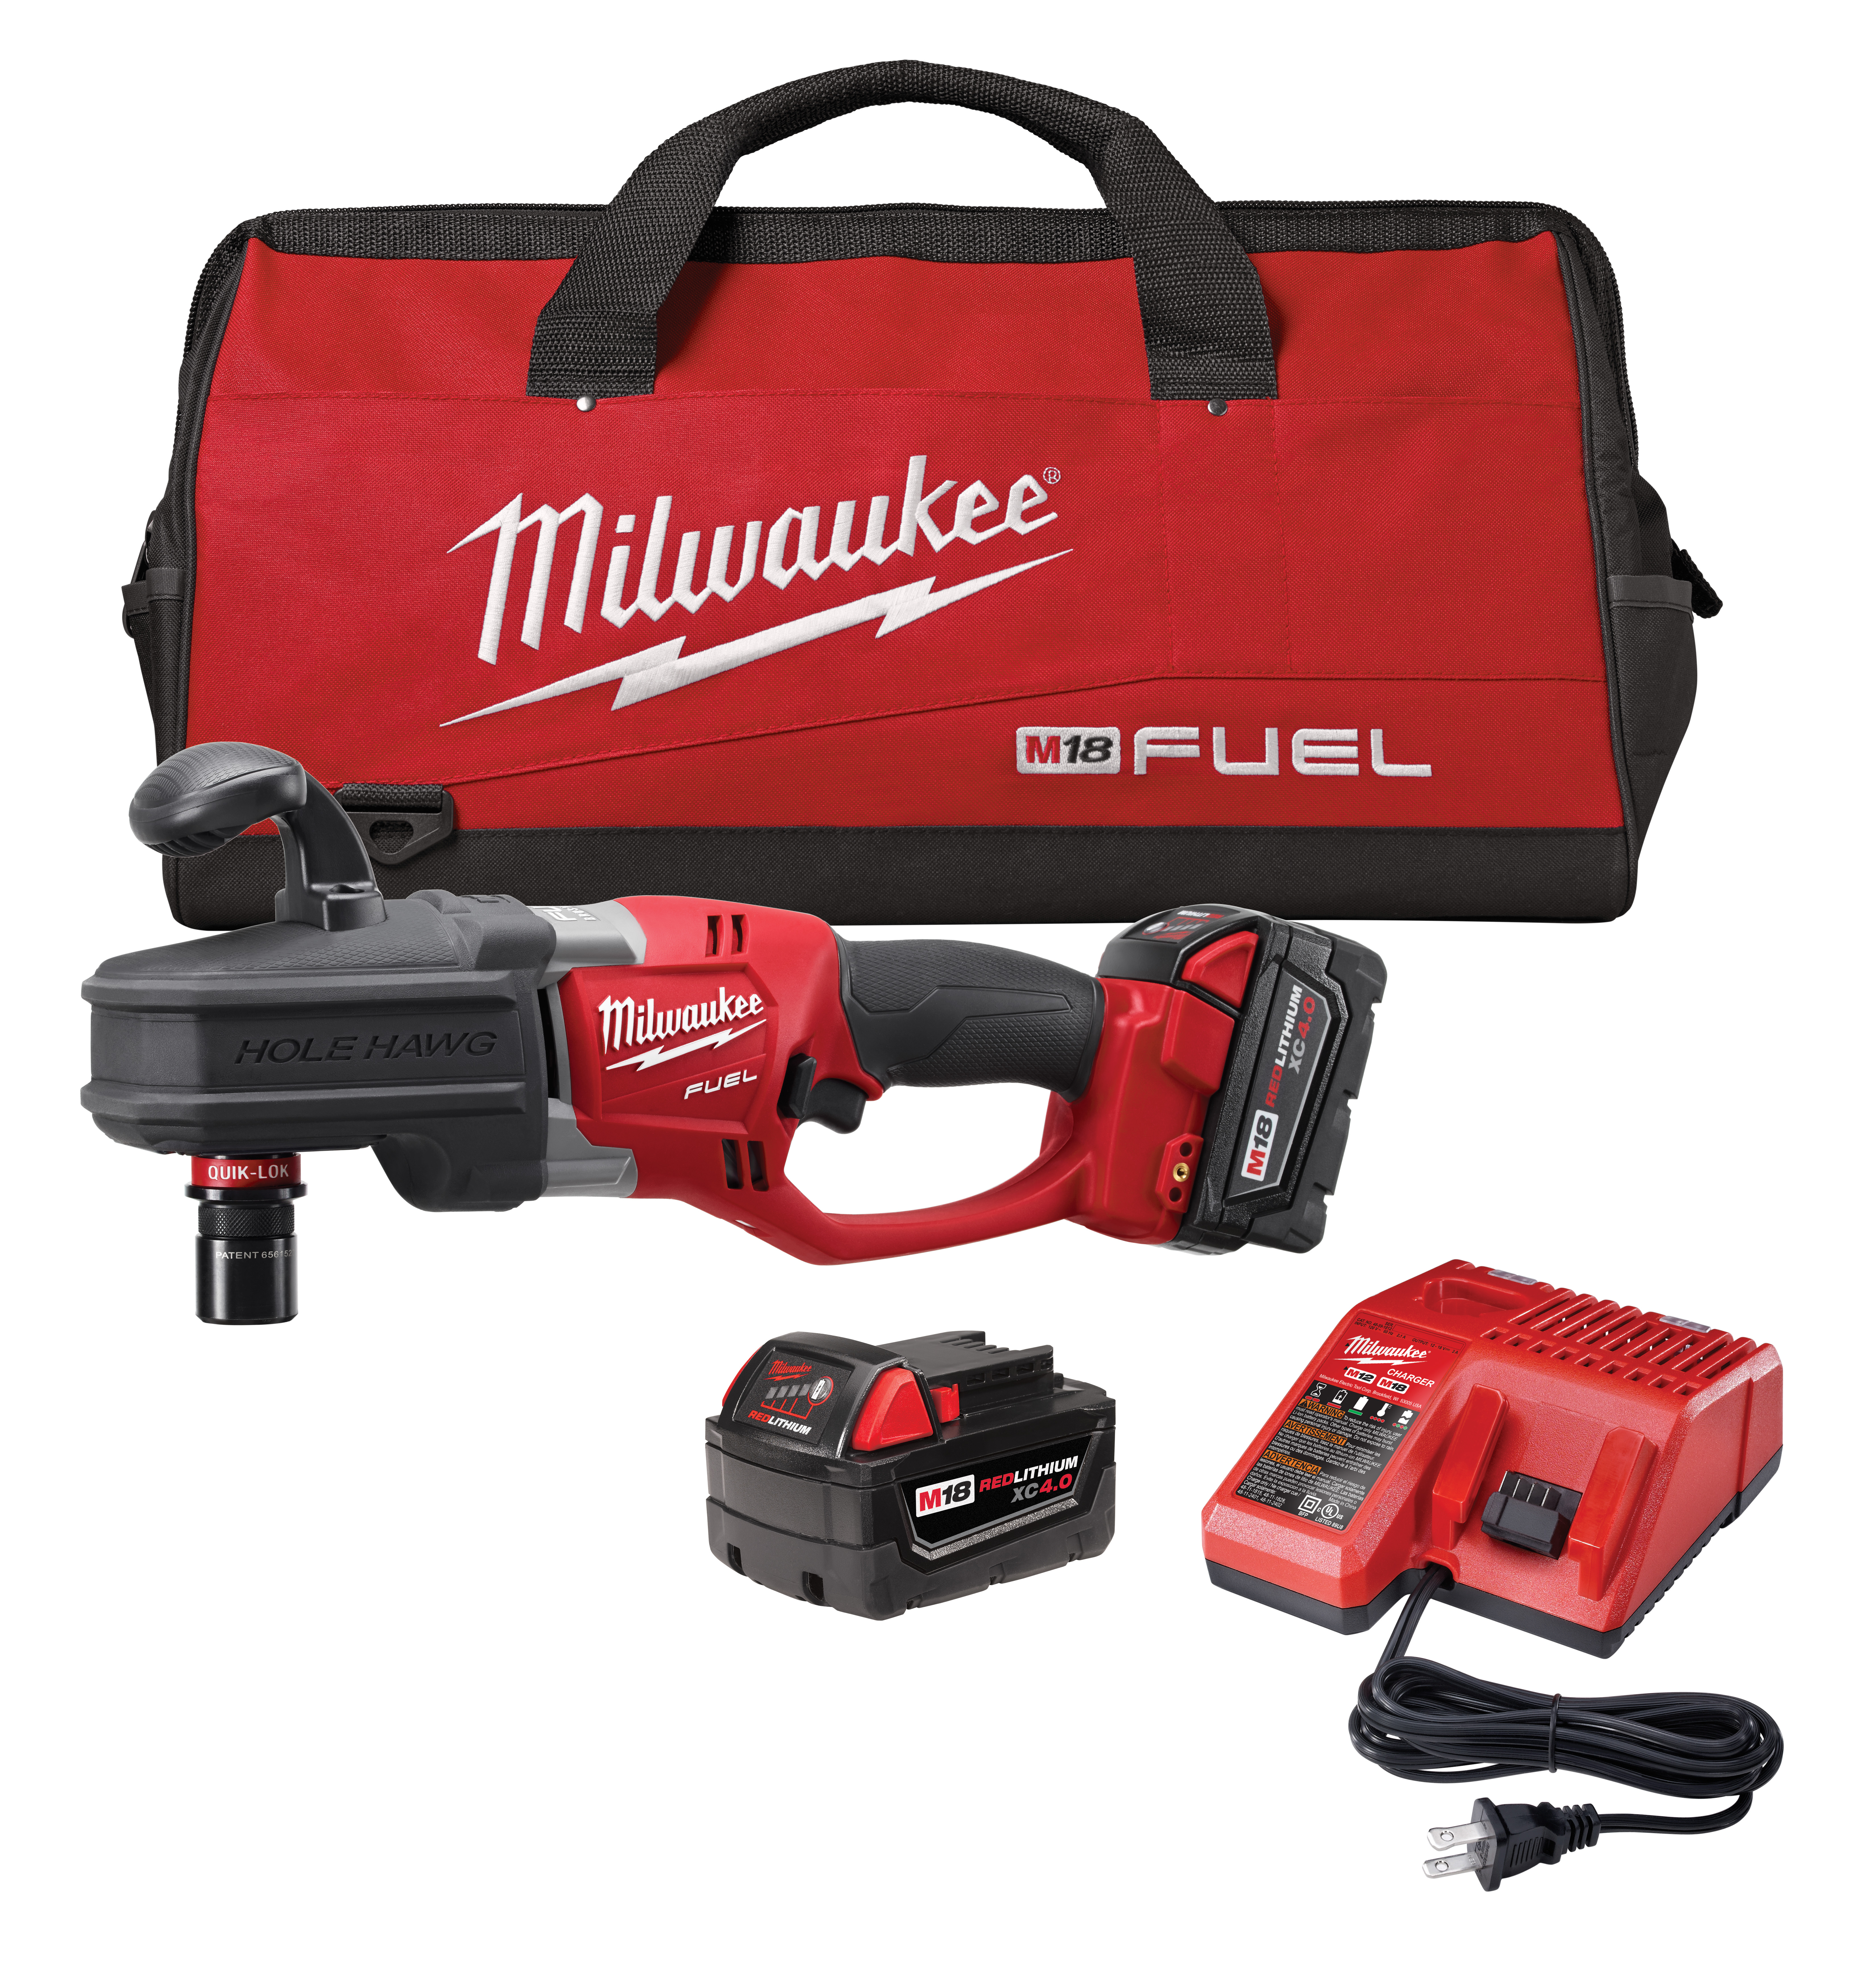 Milwaukee® M18™ FUEL™ 2708-22 HOLE HAWG® Cordless Right Angle Drill Kit, 1/2 in QUIK-LOK™ Chuck, 18 VDC, 650 ft-lb Torque, 0 to 1200 rpm No-Load, 17 in OAL, Lithium-Ion Battery